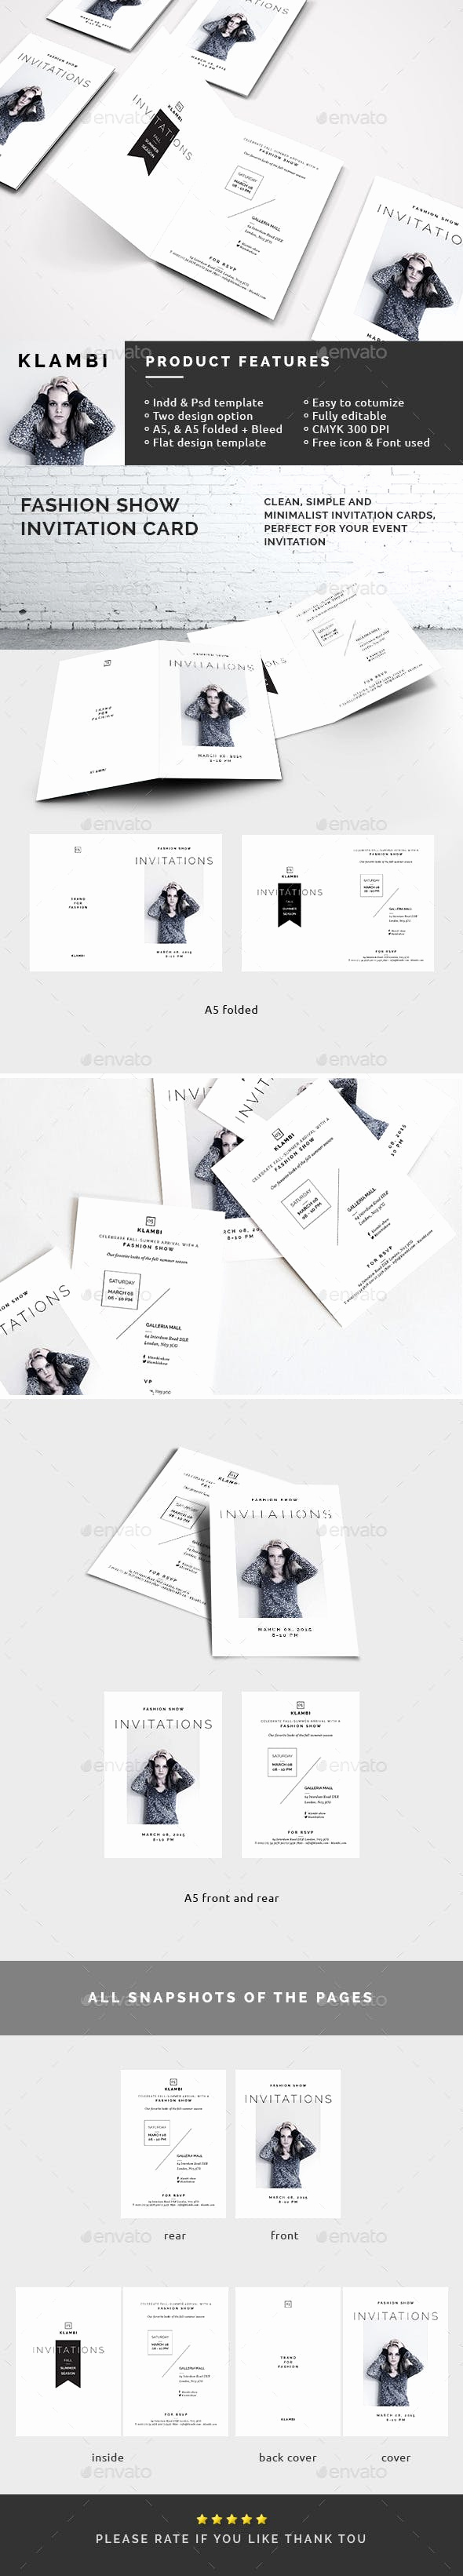 Fashion Show Invitation Template New Fashion Show Invitation Template by Boxkayu